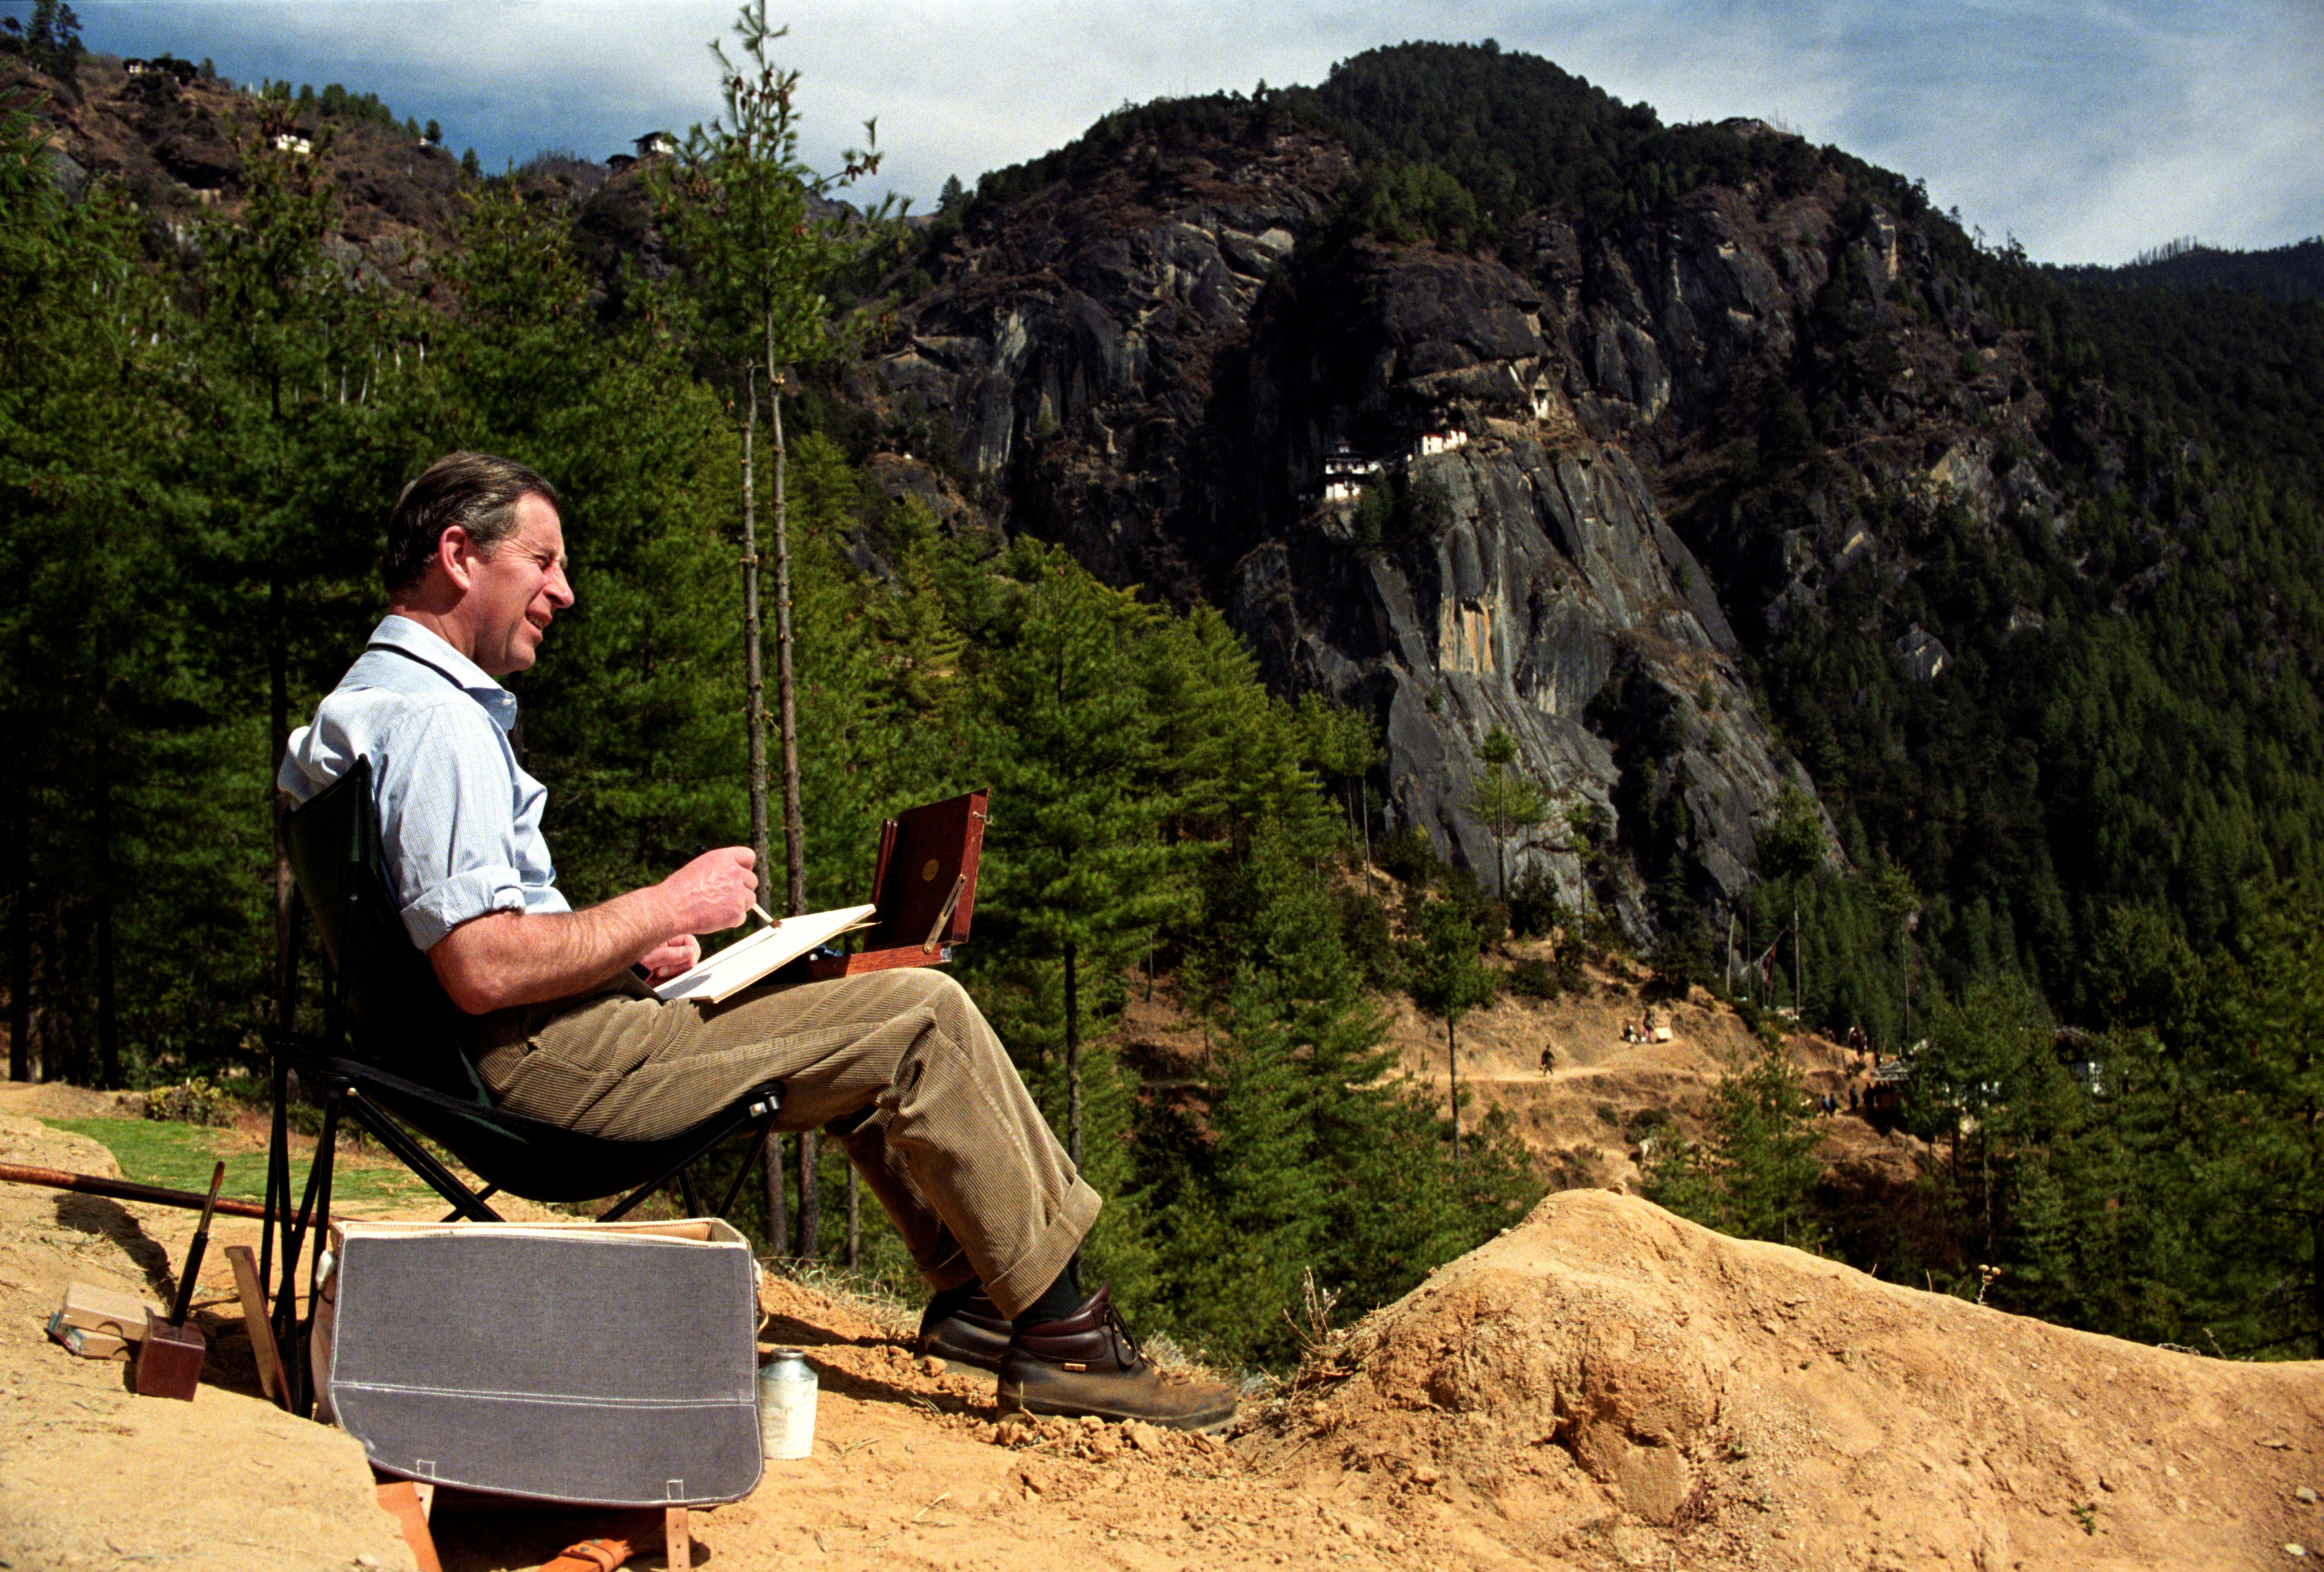 The Prince of Wales paints a water colour in the Bhutan Himalayas, while trekking up to the Tiger's Nest Monastery. (John Stillwell/PA)